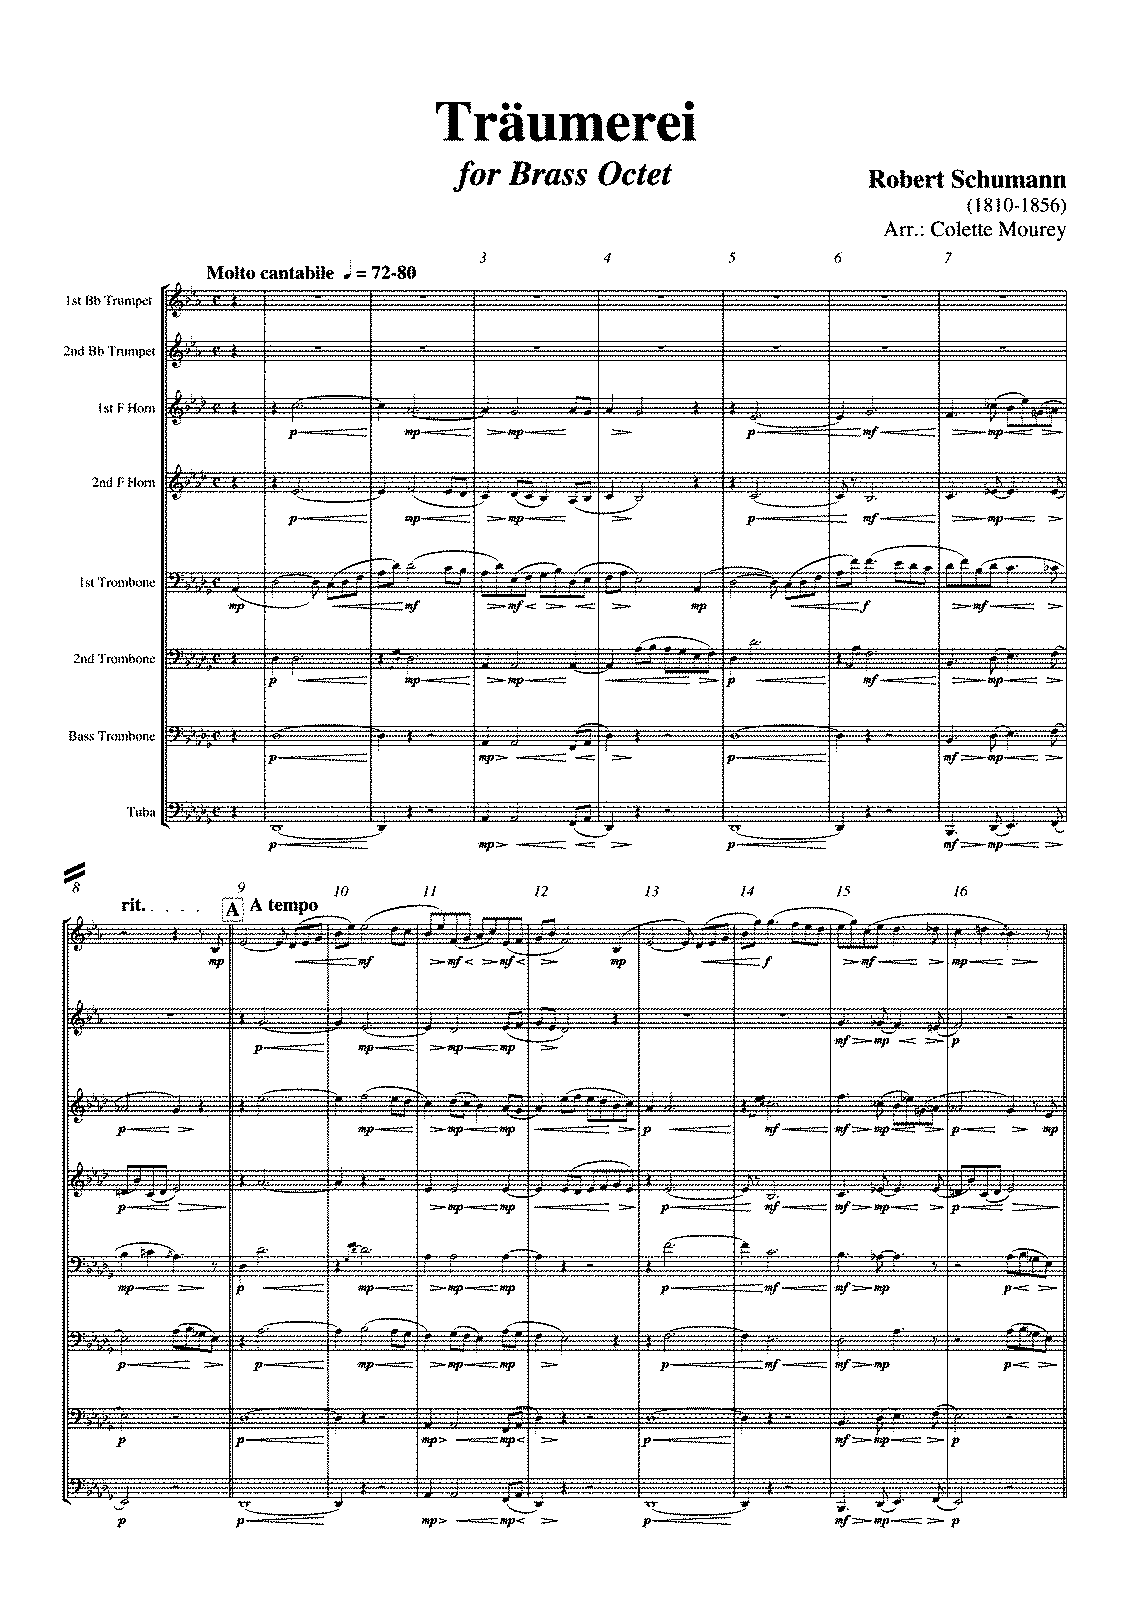 PMLP02799-Träumerei Schumann Brass Octet Arr Colette Mourey Full Score and Parts.pdf